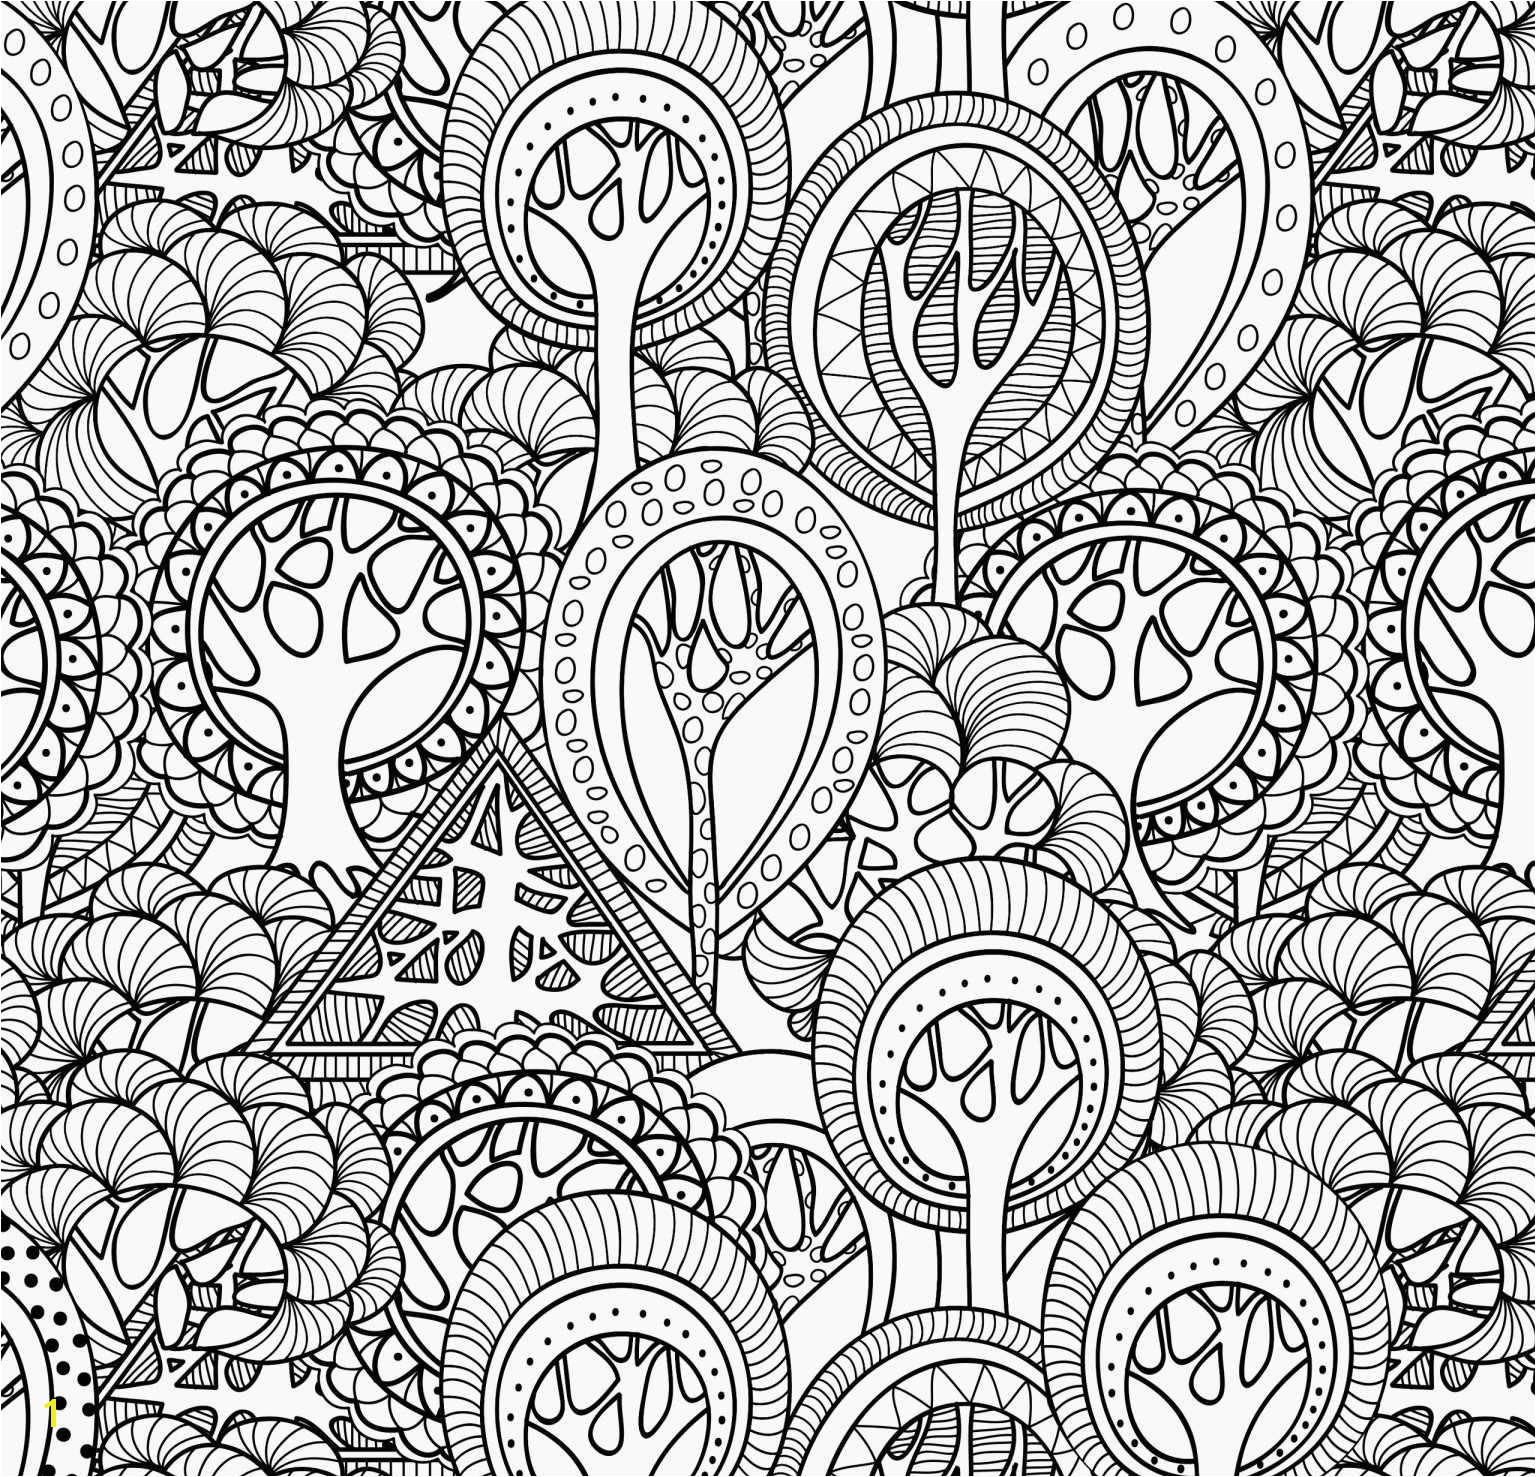 Kindergarten Coloring Pages Lovely Fresh S S Media Cache Ak0 Pinimg originals 0d B4 2c Free Gallery